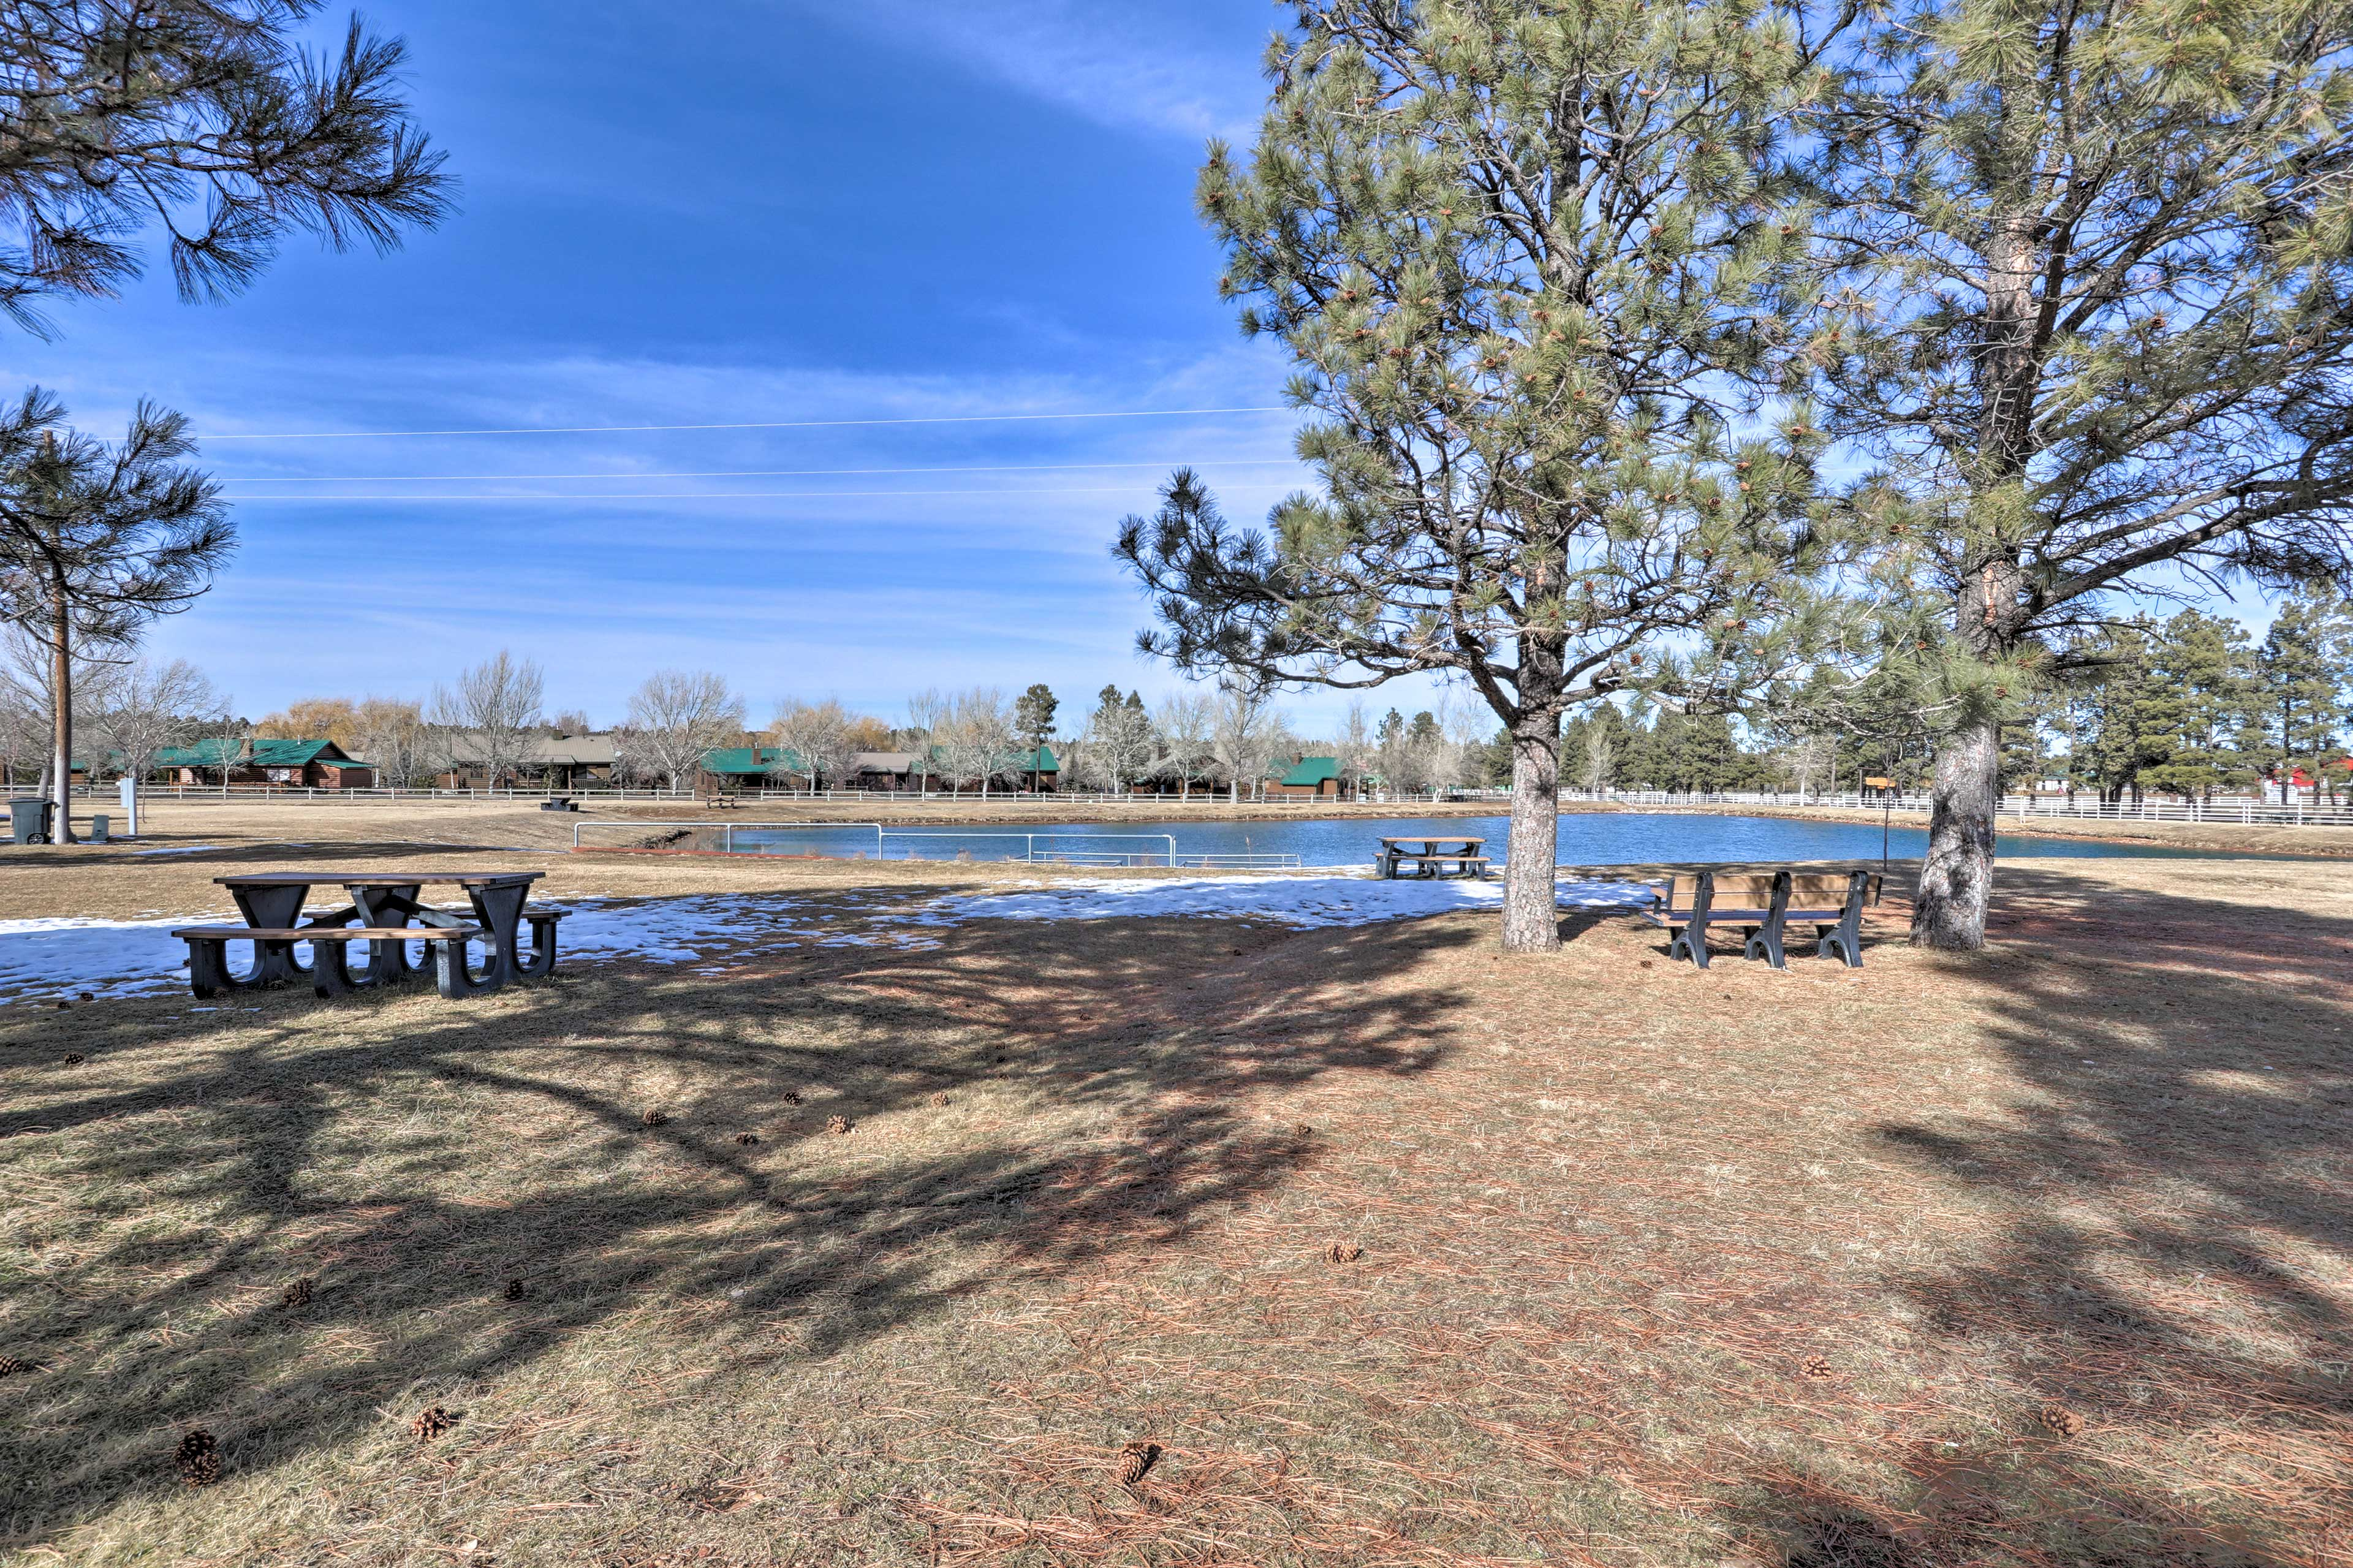 The family-friendly community features picnic tables, a playground, & much more!